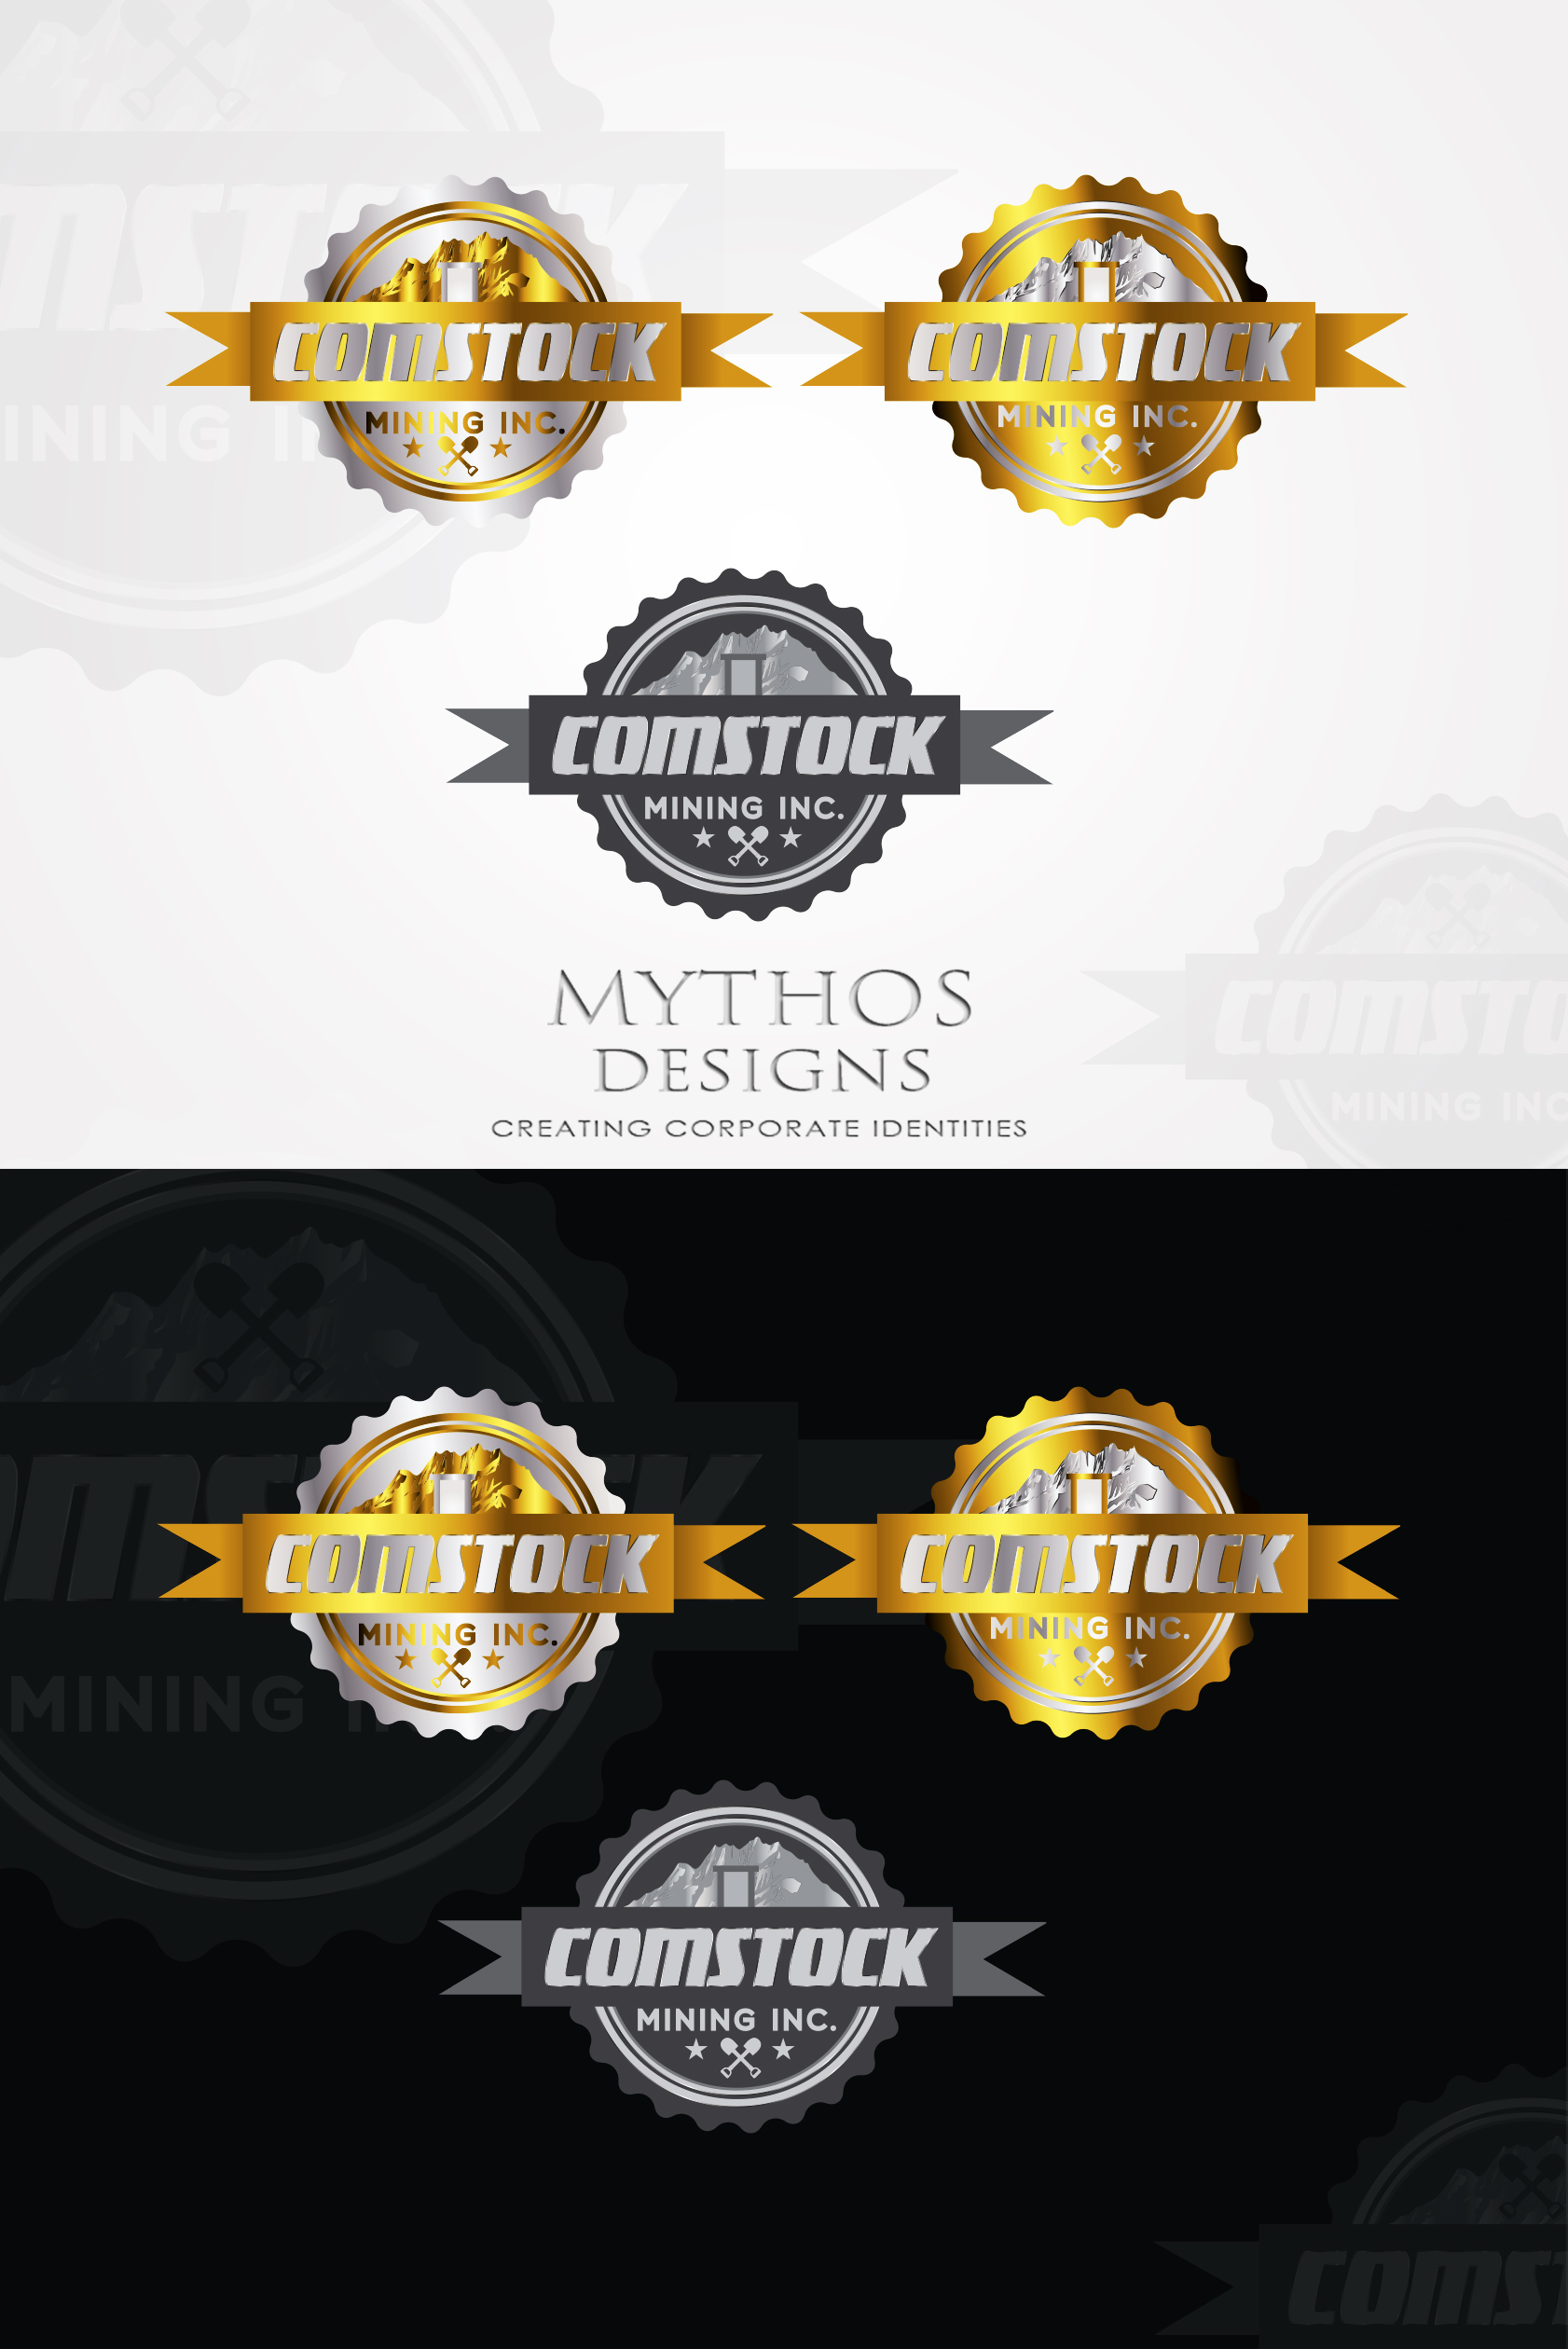 Logo Design by Mythos Designs - Entry No. 146 in the Logo Design Contest Captivating Logo Design for Comstock Mining, Inc..